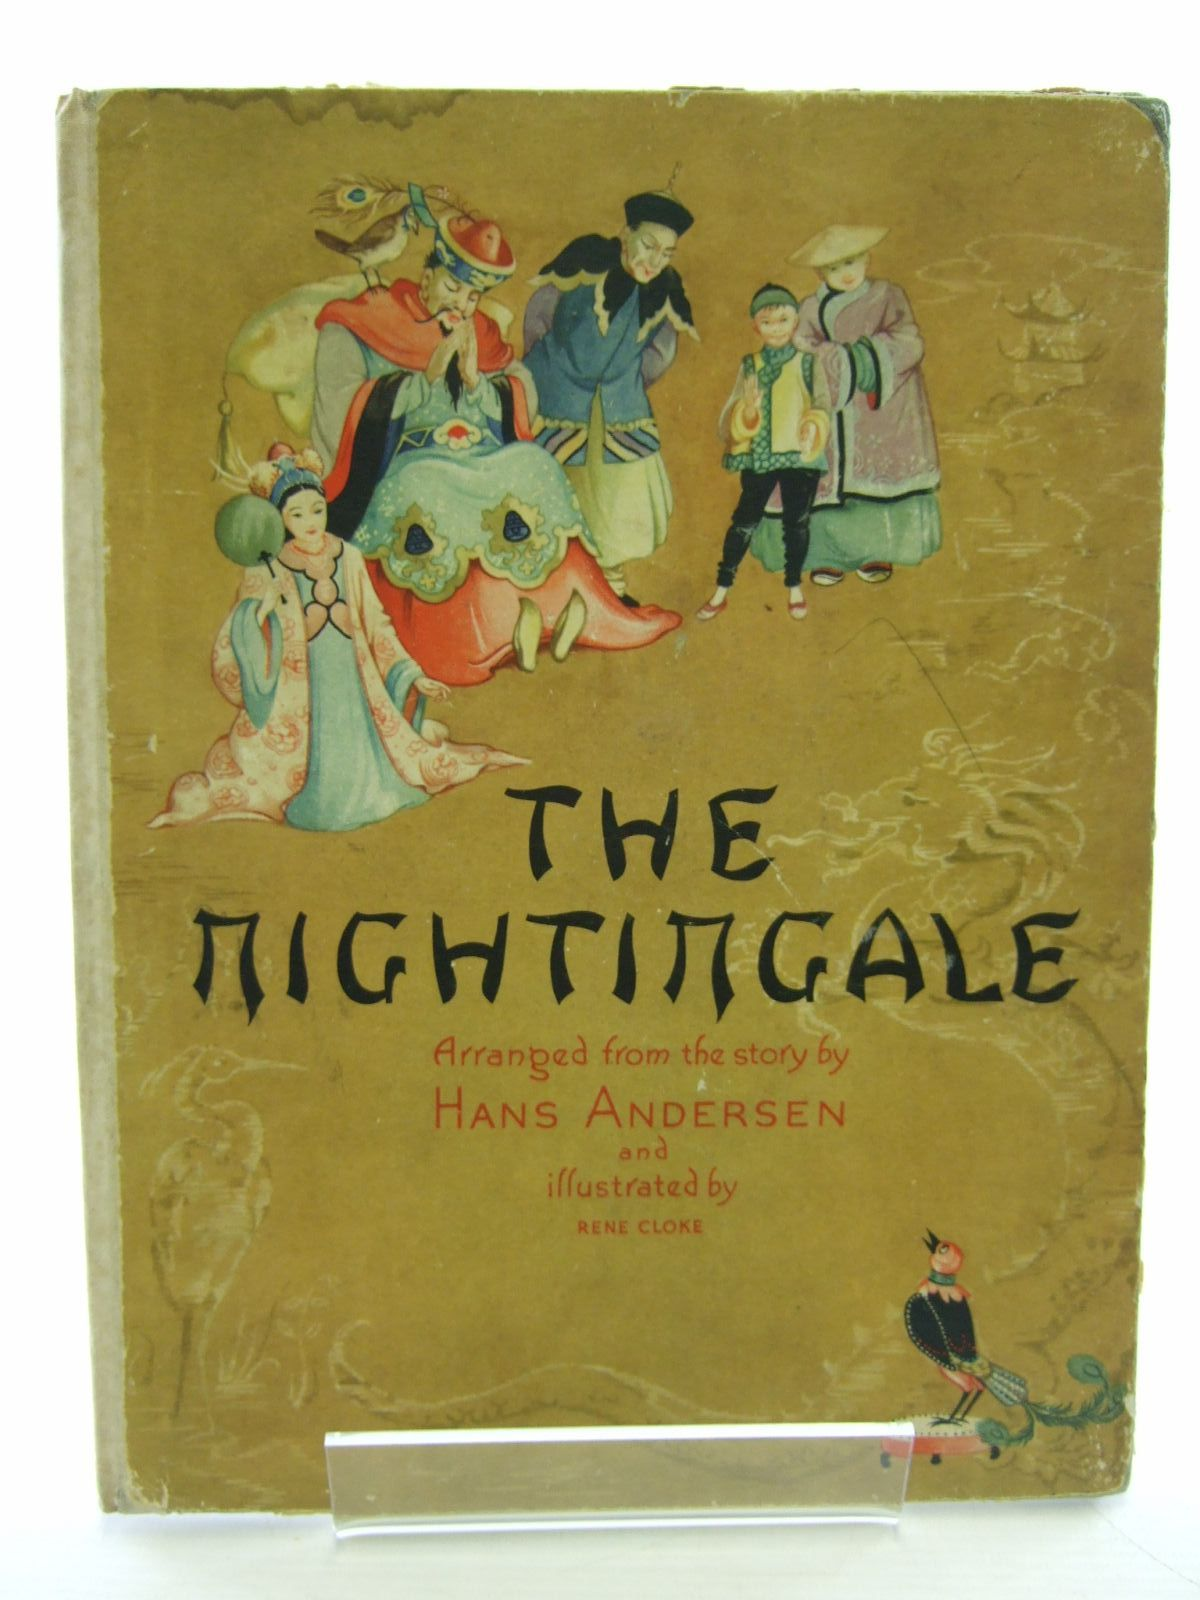 hans christian andersen the nightingale